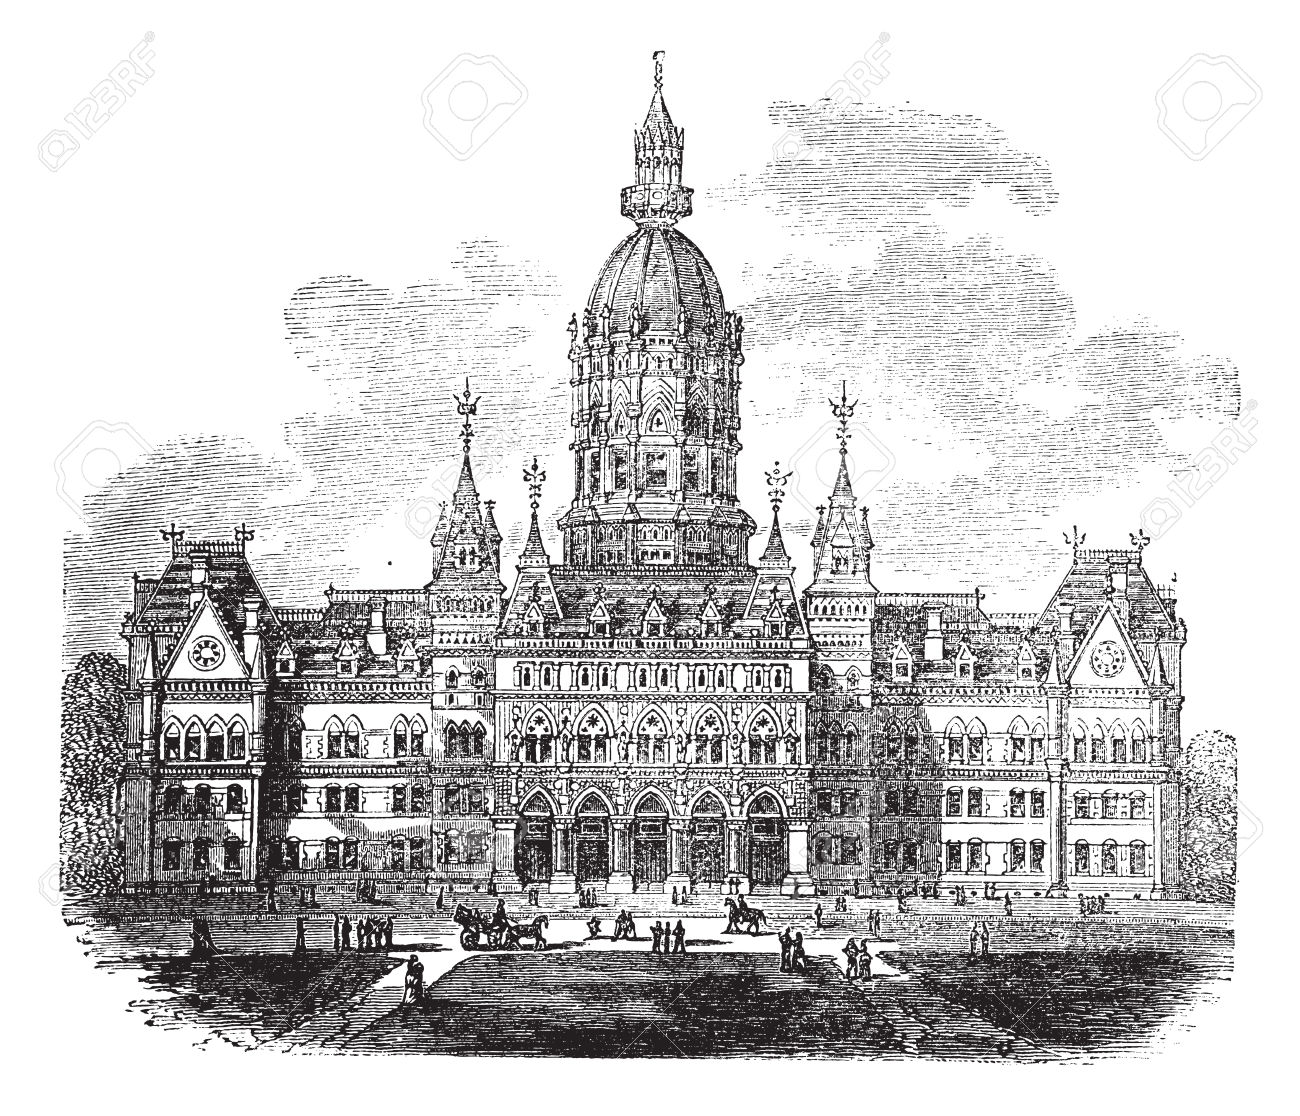 118 Hartford Connecticut Stock Illustrations, Cliparts And Royalty.